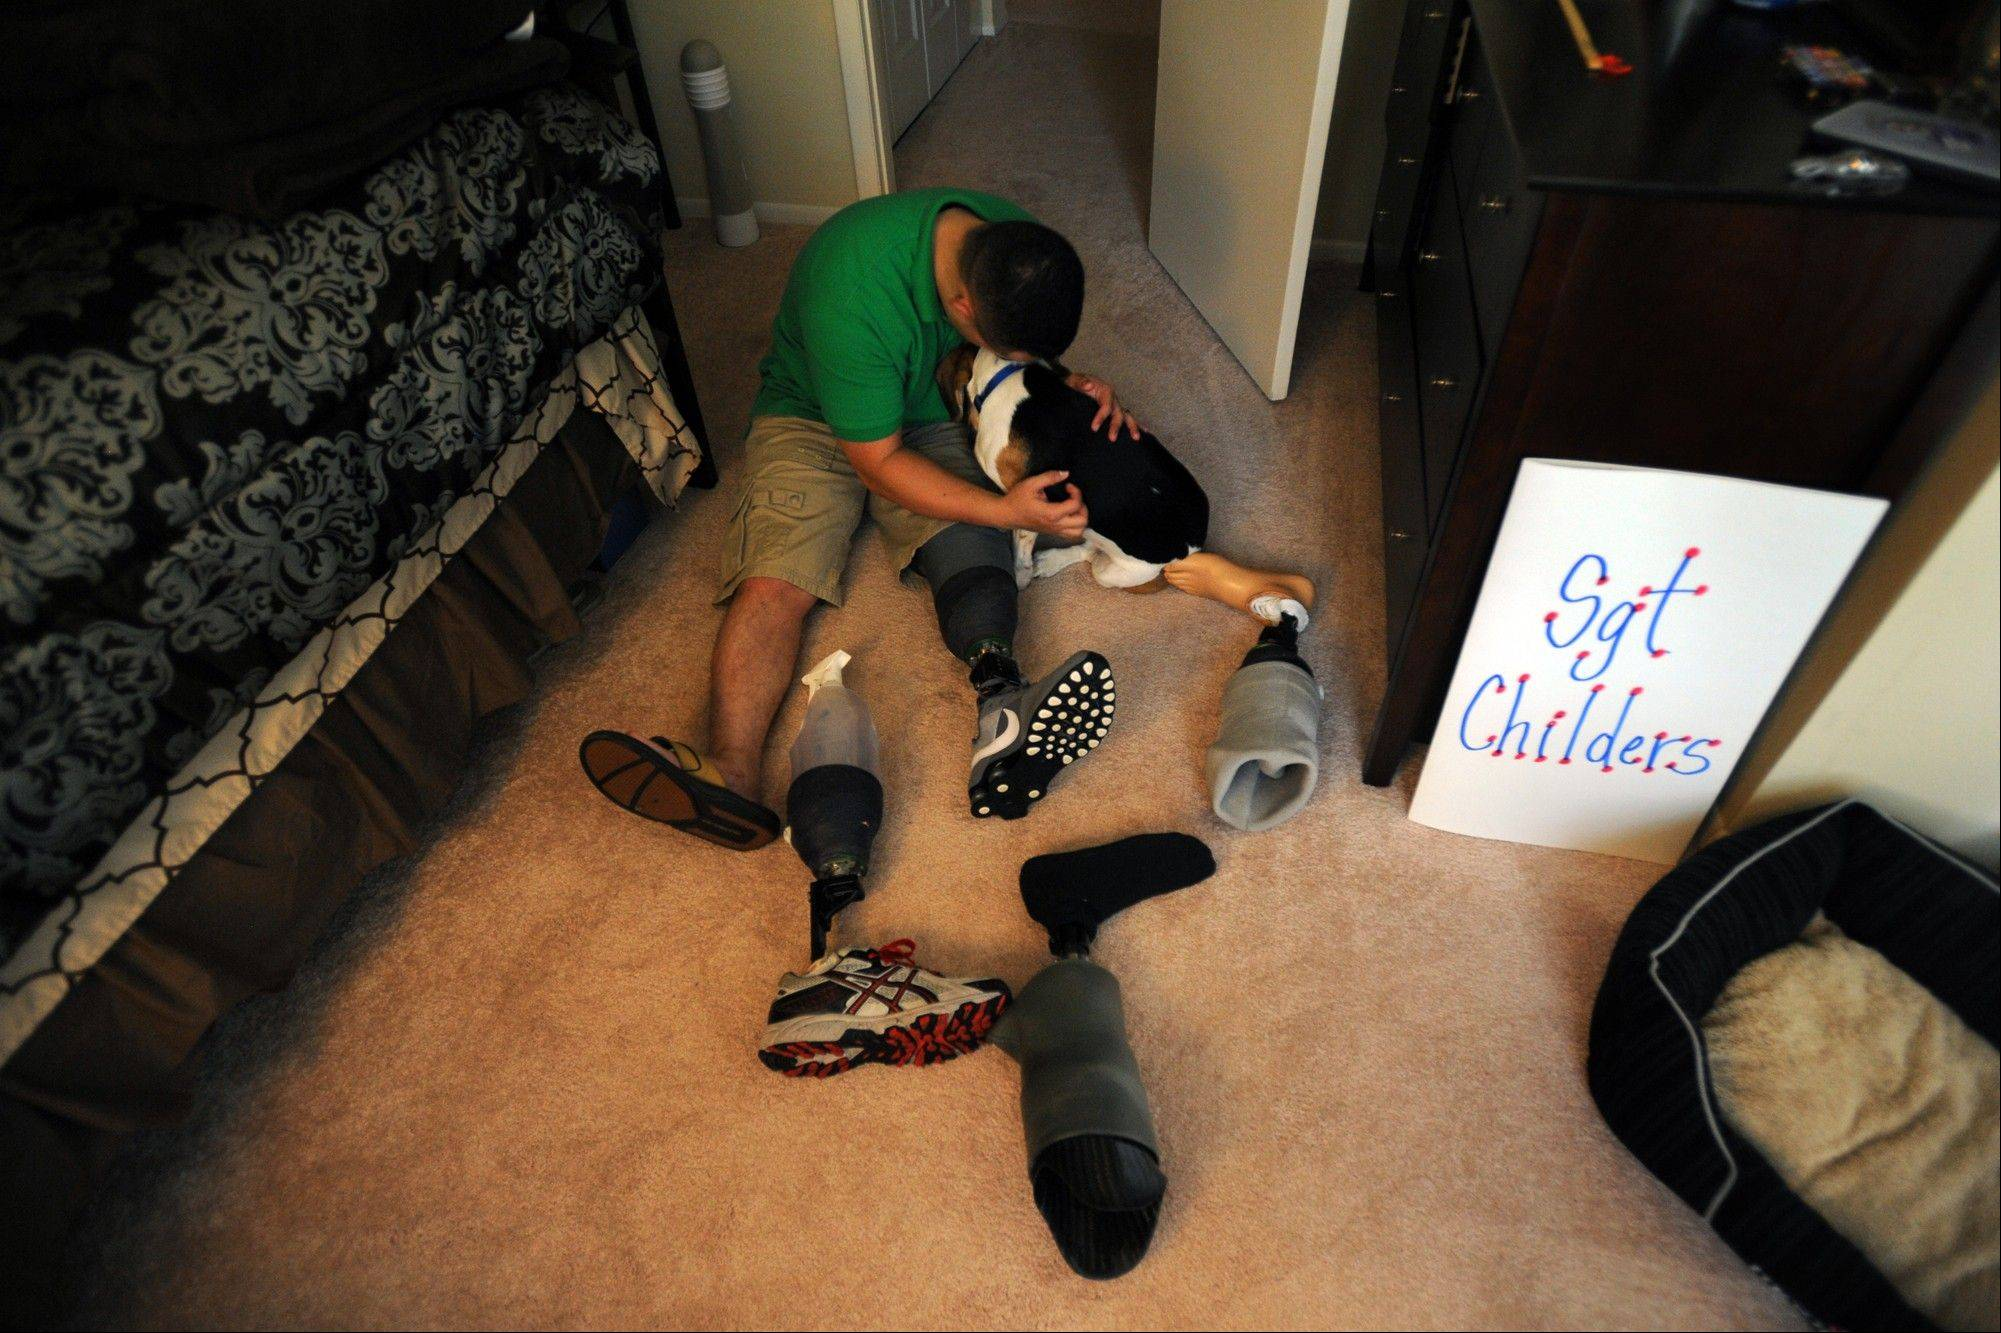 Jimmy Childers, a Marine sergeant and amputee, hugs his beagle, Tidus, amid his prosthetic legs at home in Gaithersburg, Md.